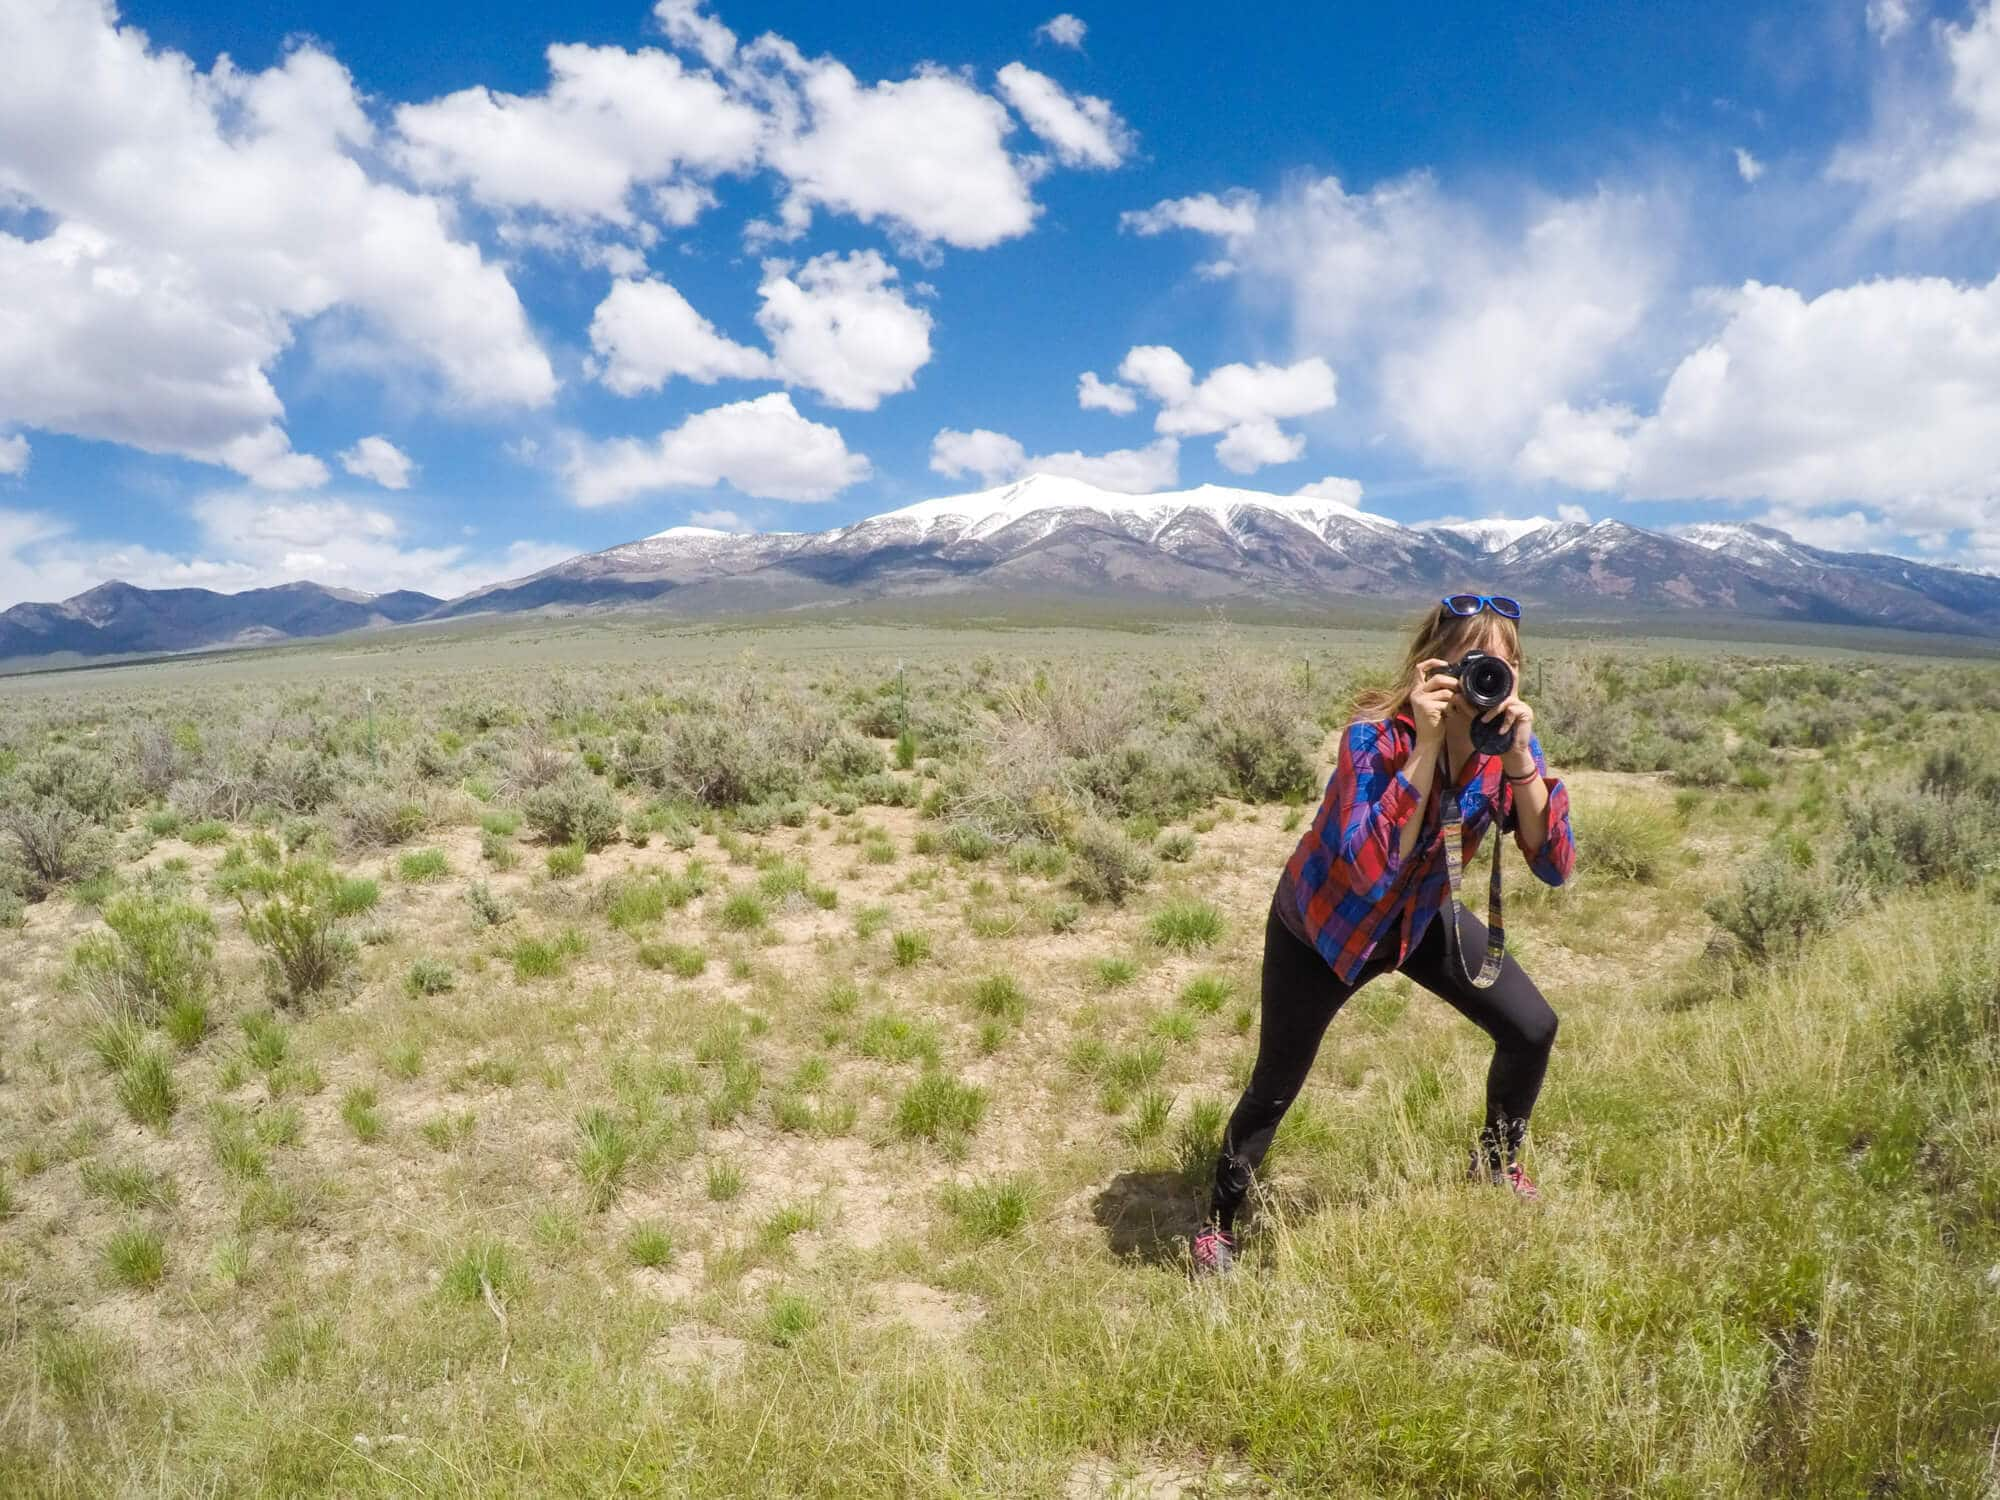 Outdoor photographer // Want to ditch the 9-5 for more time outside? Here are 10 outdoor career paths that will get you out of the cube, providing healthy work-life balance and plenty of fresh air.